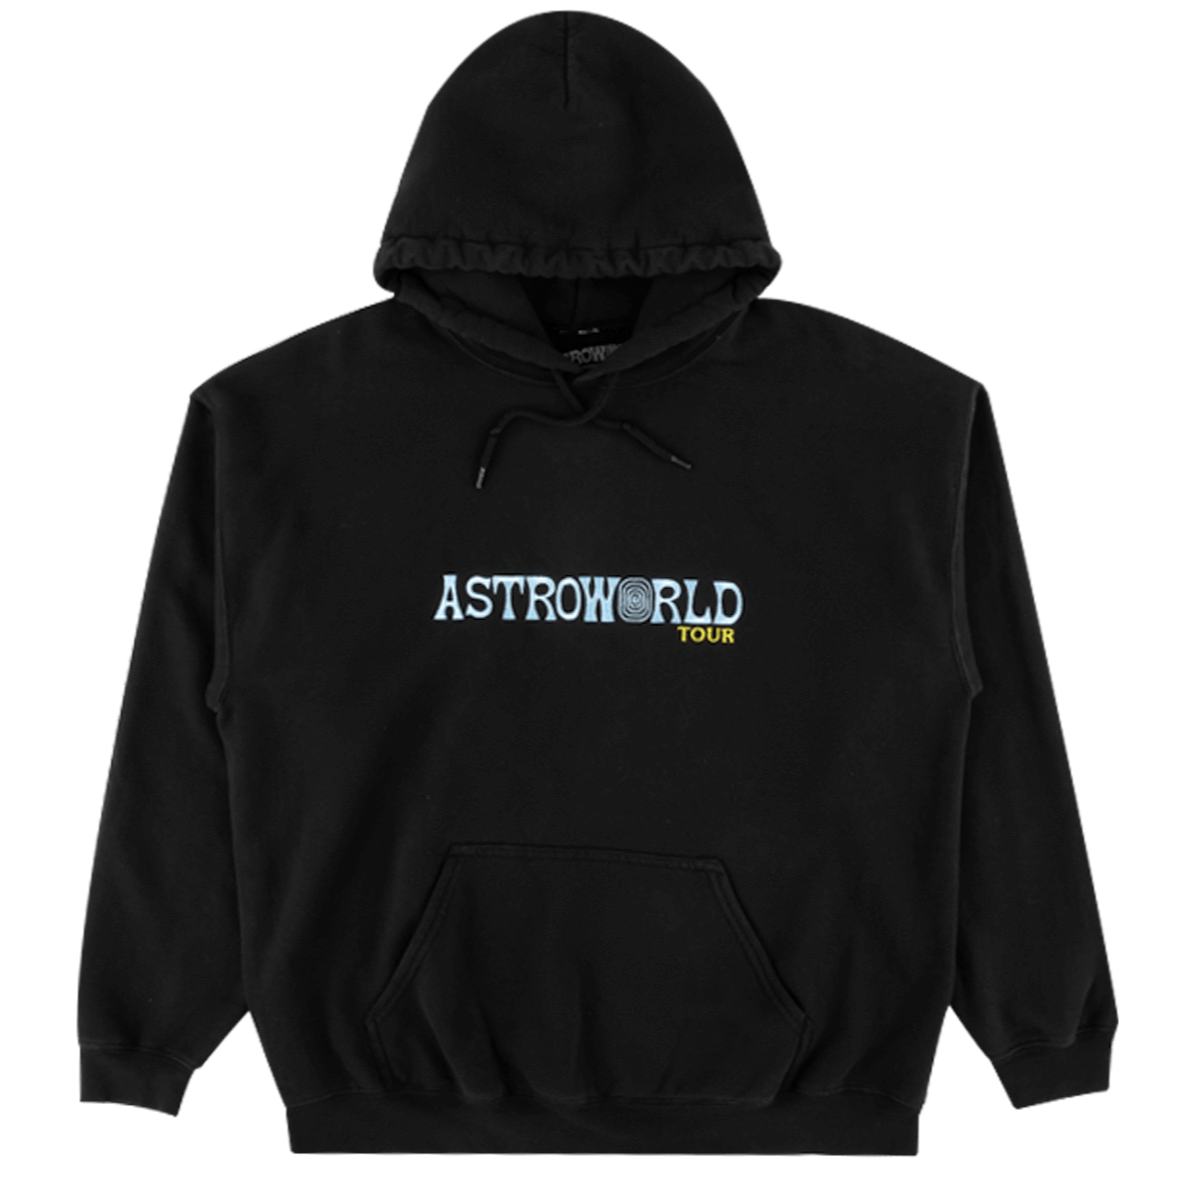 Astroworld Tour 2 Hoodie